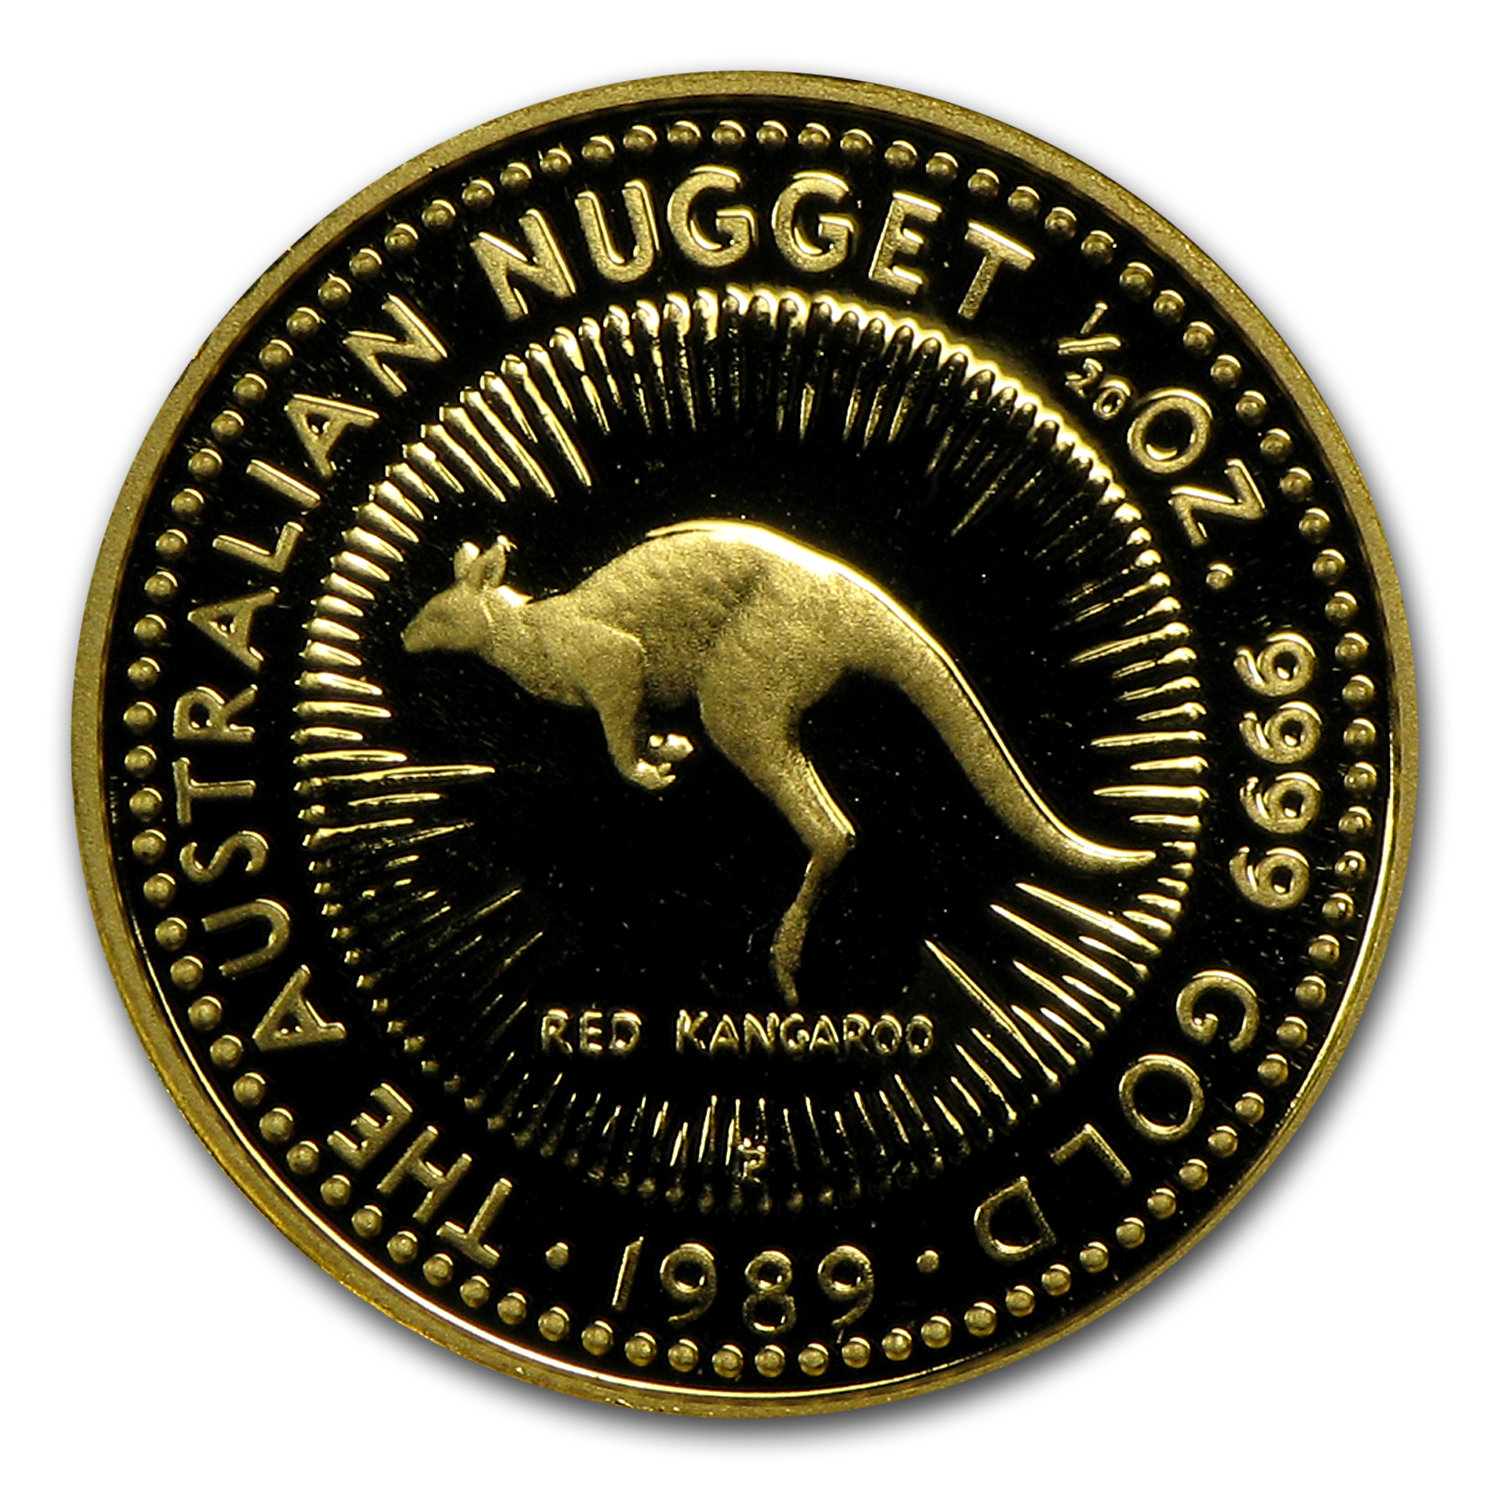 1989 1/20 oz Australian Proof Gold Nugget